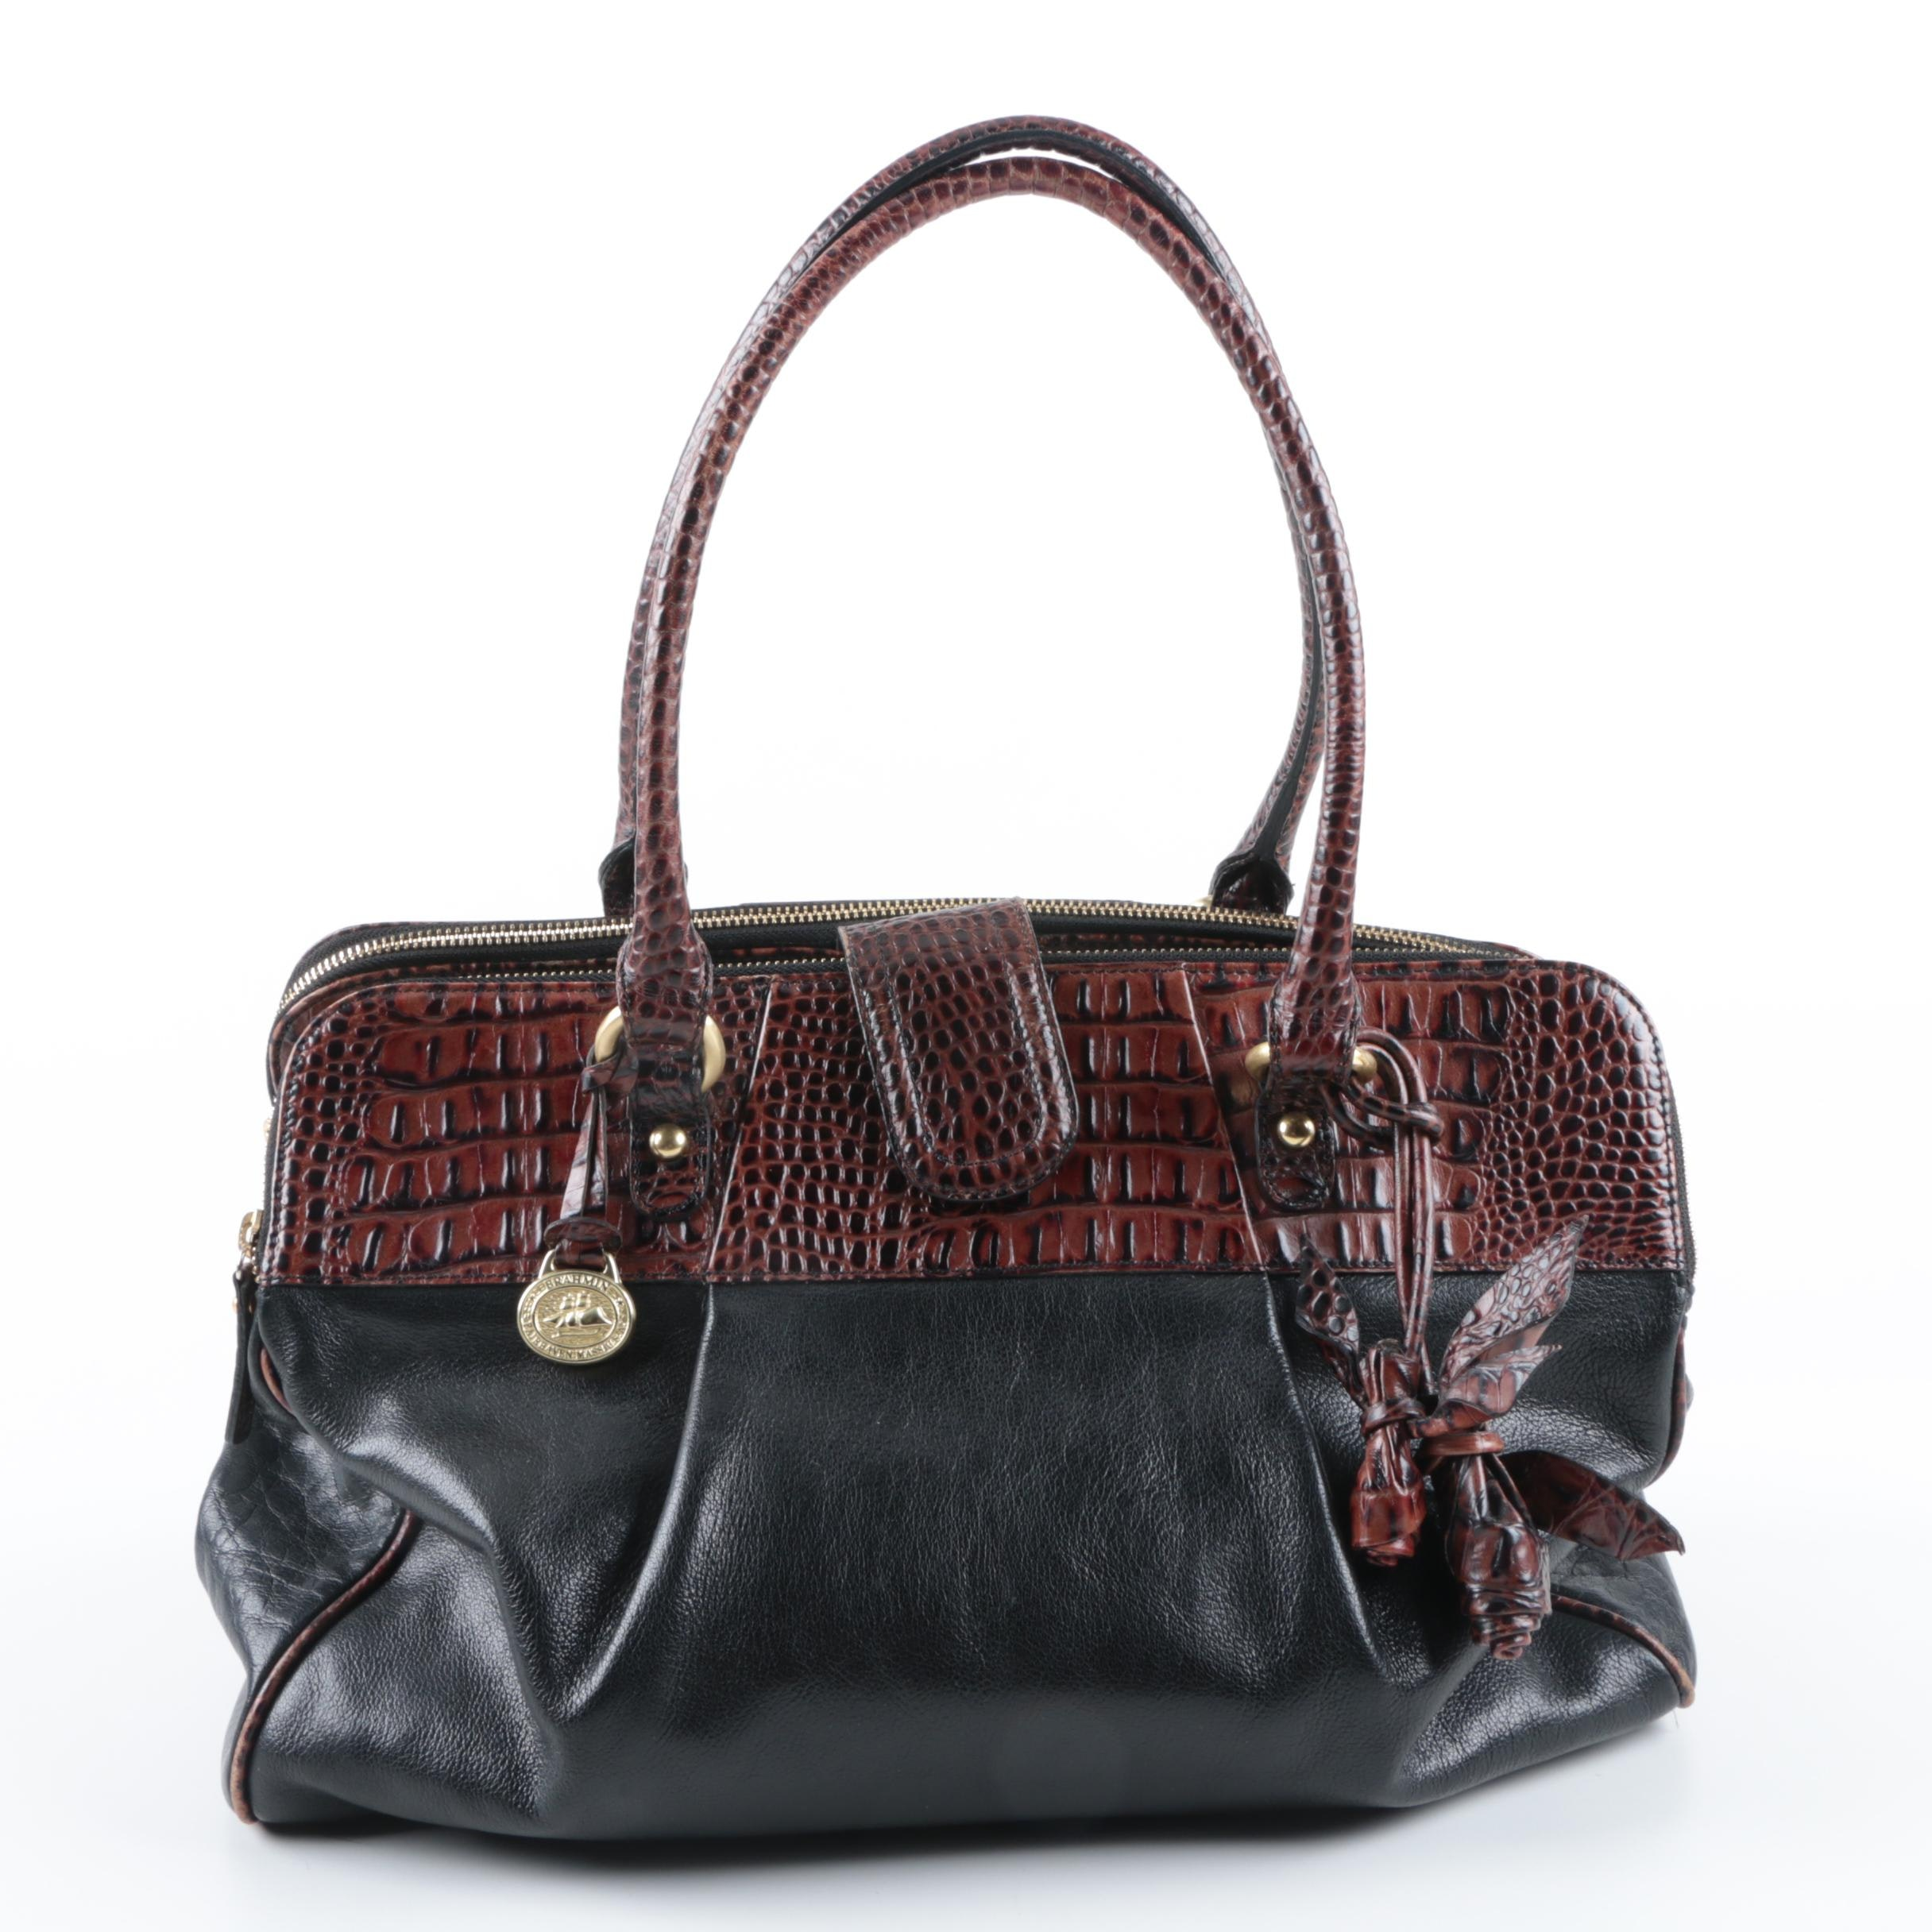 Brahmin Handbag with Embossed Accents